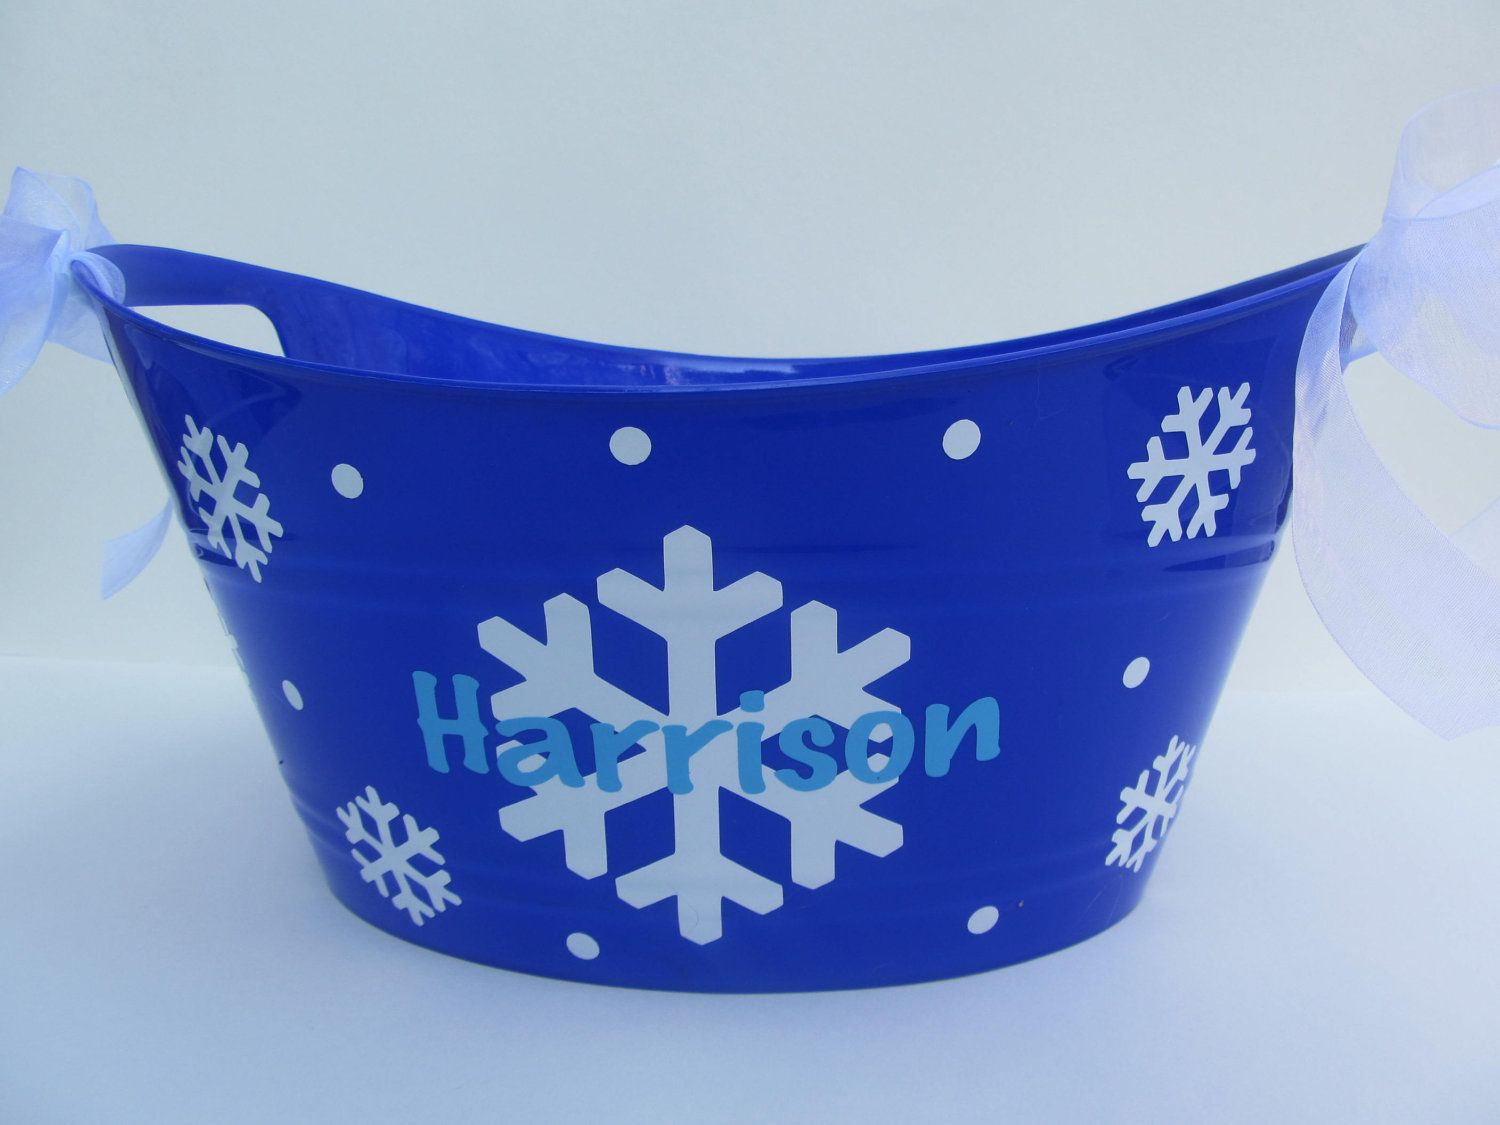 Christmas or Holiday gift tub - Personalized oval toy, gift or ...